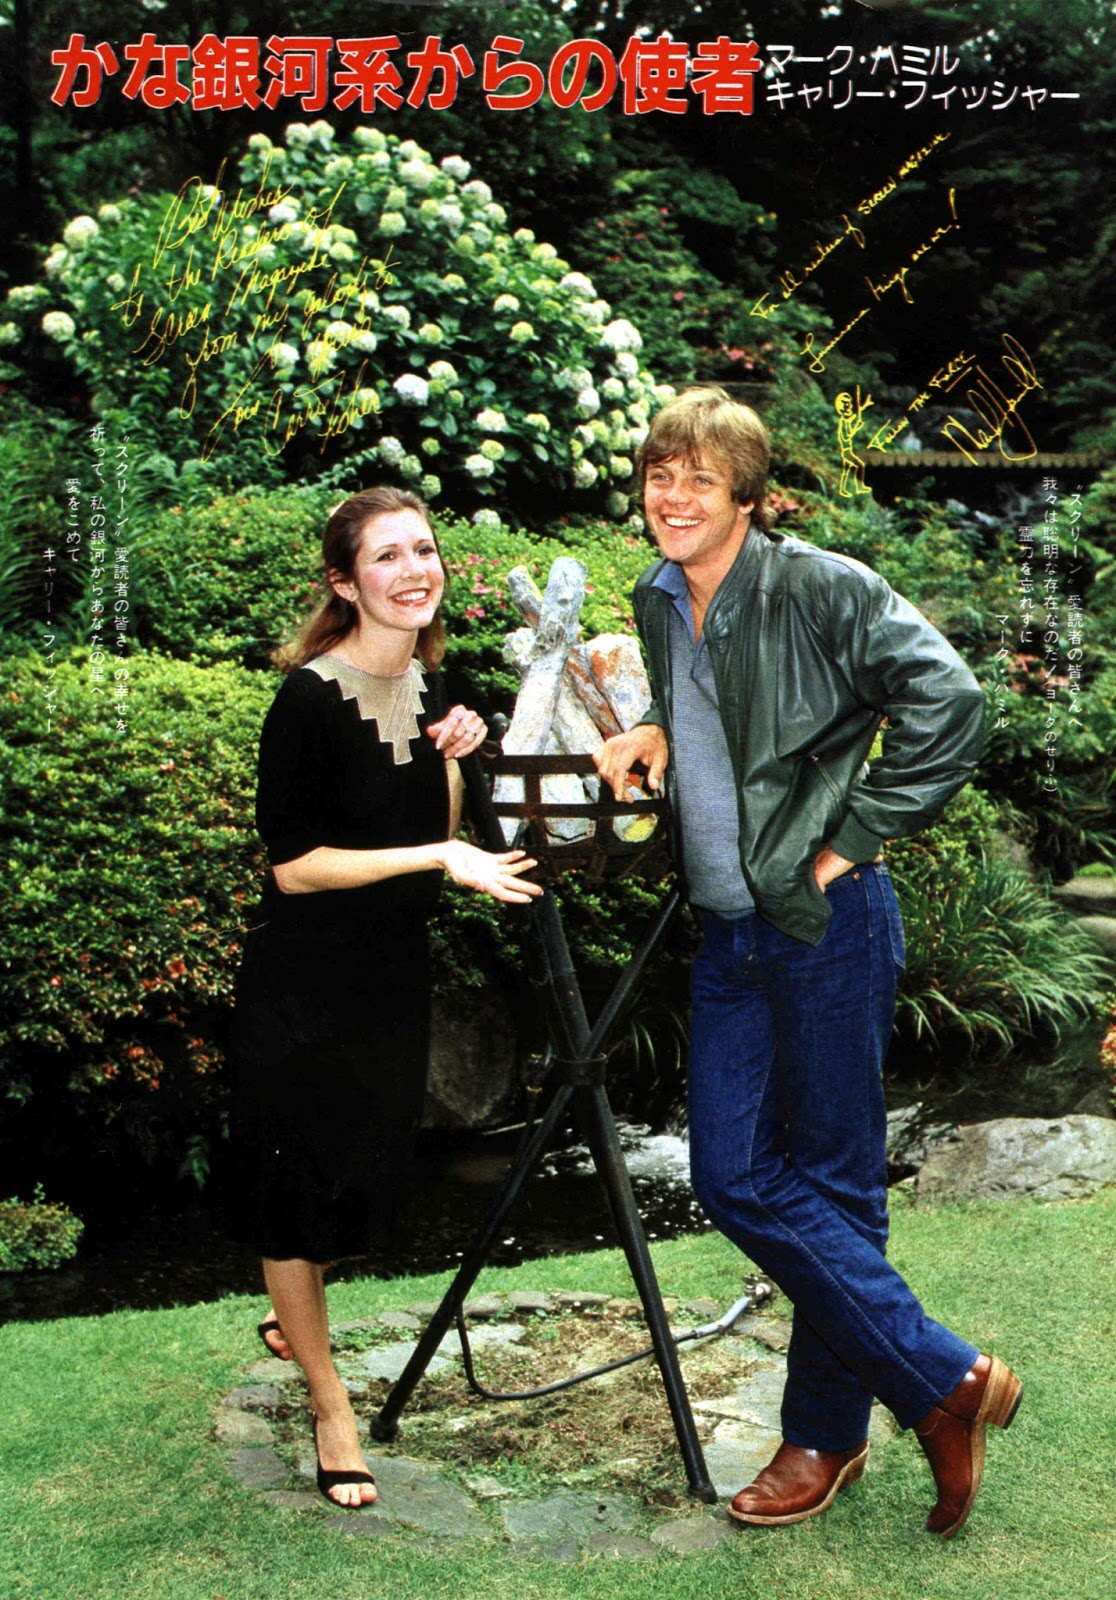 carrie fisher and mark hamill in garden